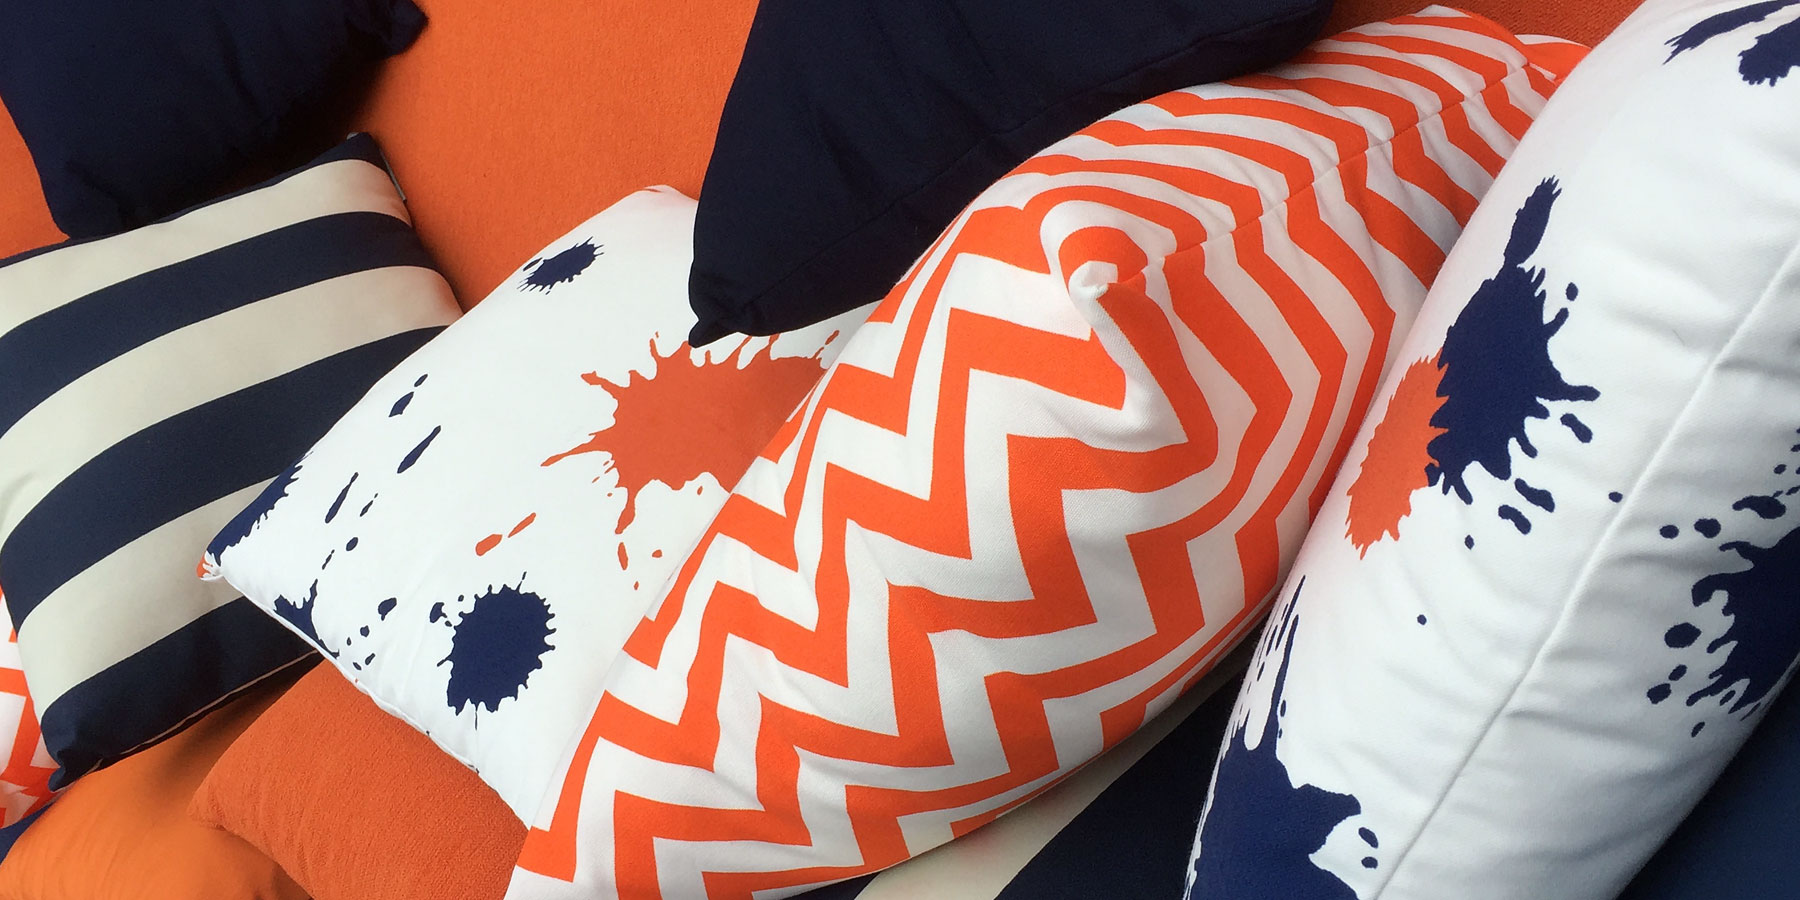 Seating area pillows